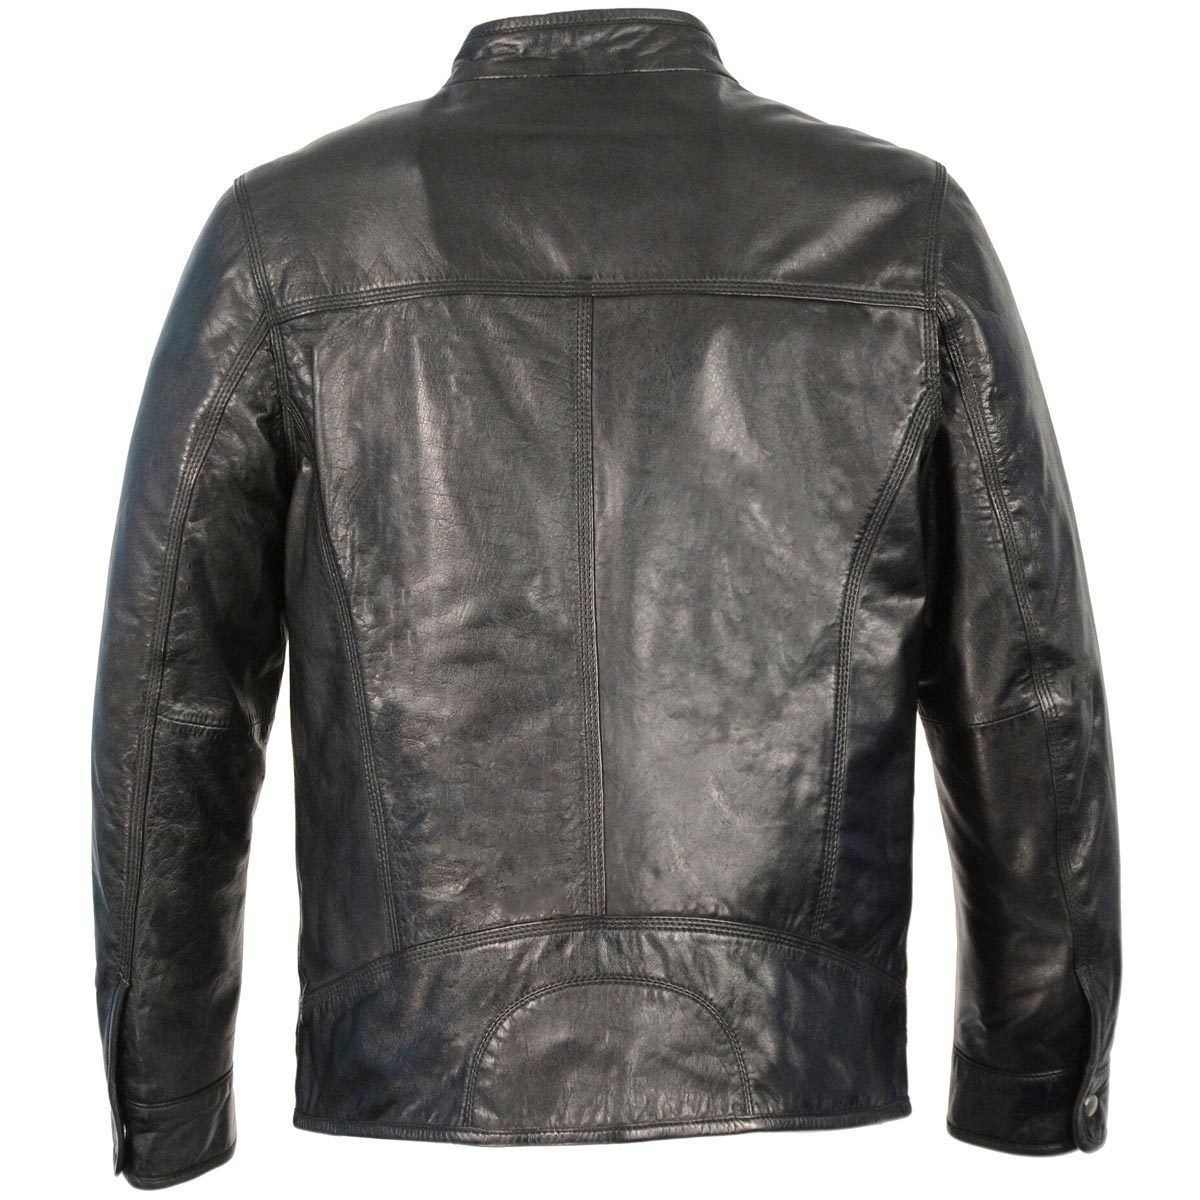 Milwaukee Leather SFM1865 Men's Black Classic Leather Jacket with